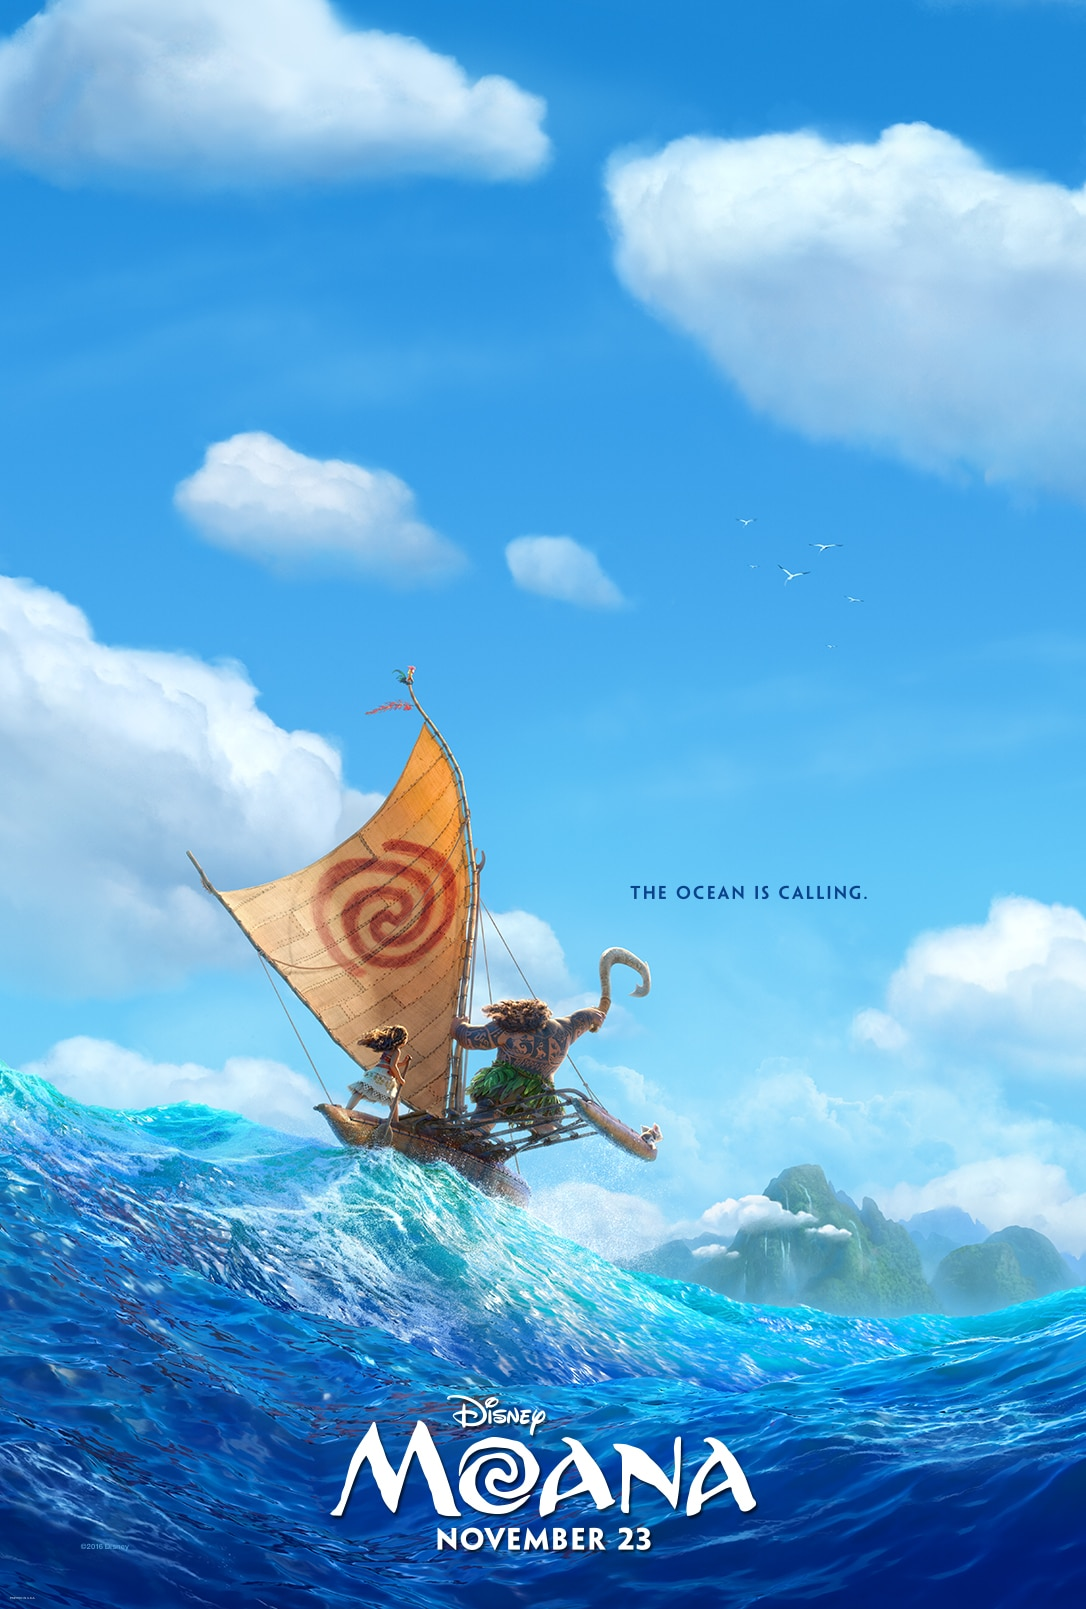 Disney's Moana in theaters Nov. 23rd